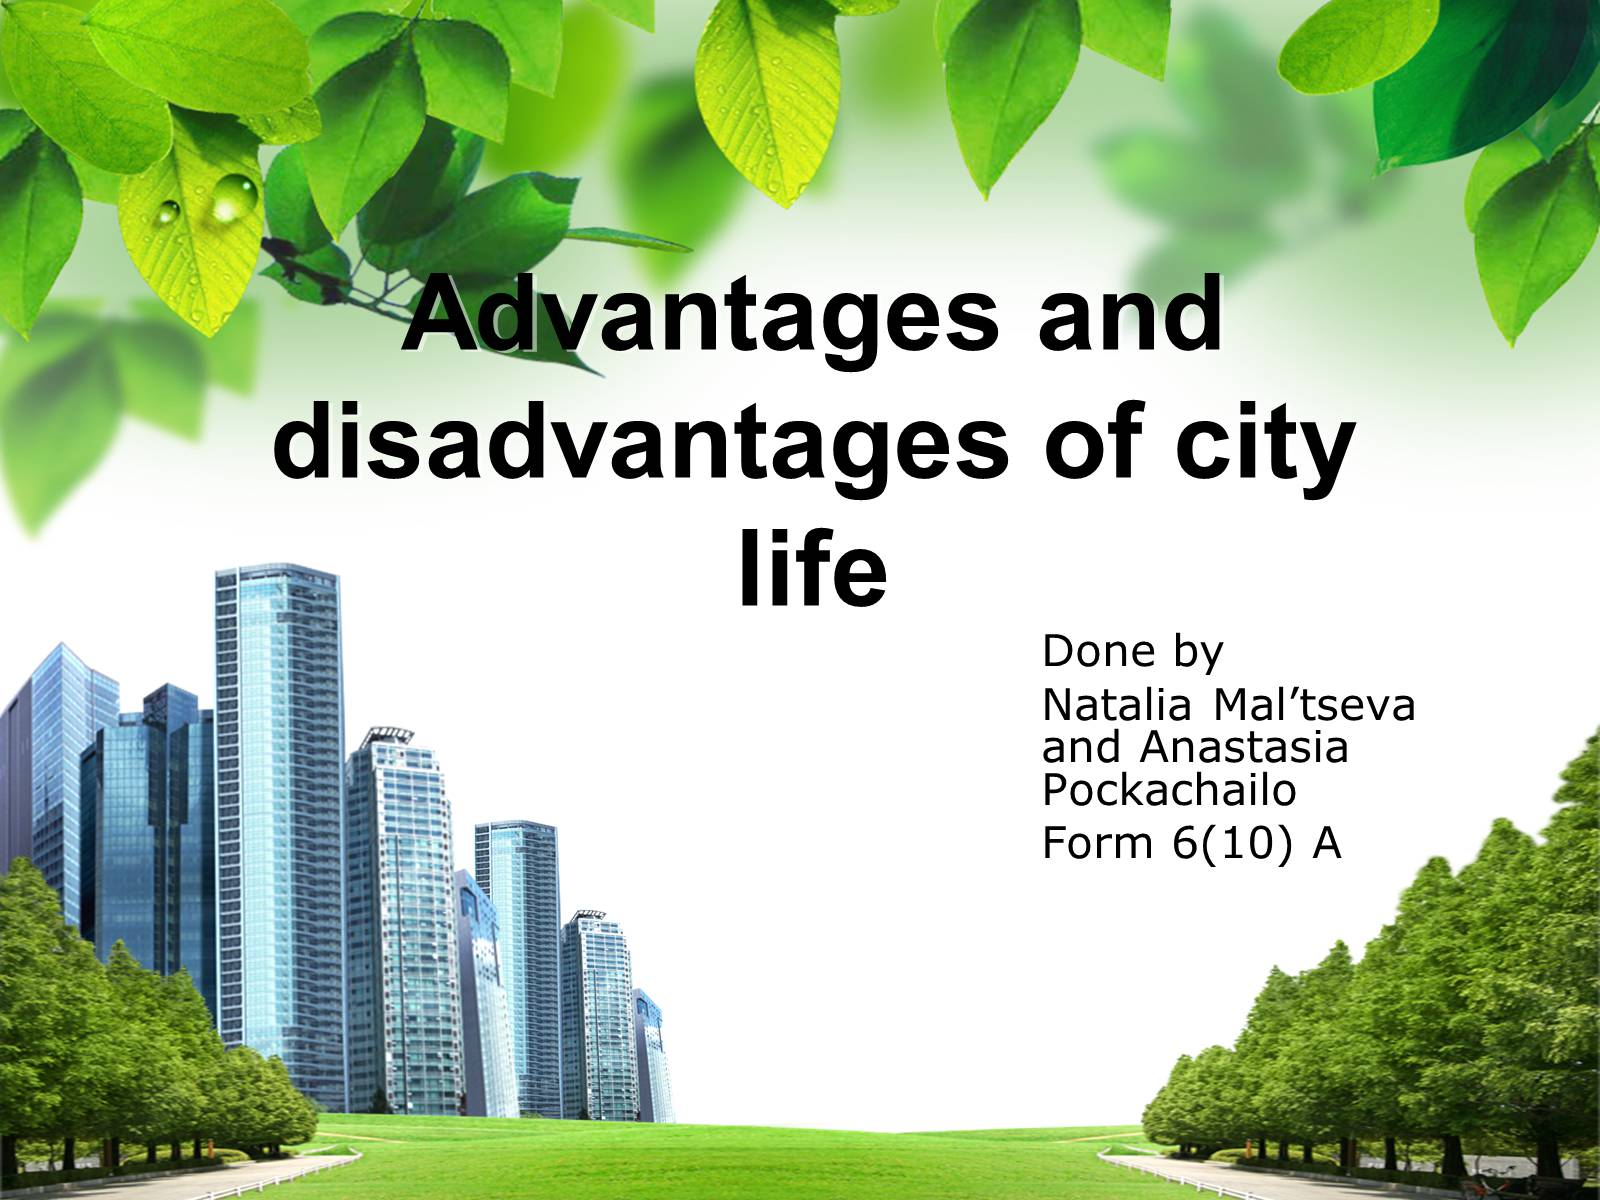 Презентація на тему «Advantages and disadvantages of city life»